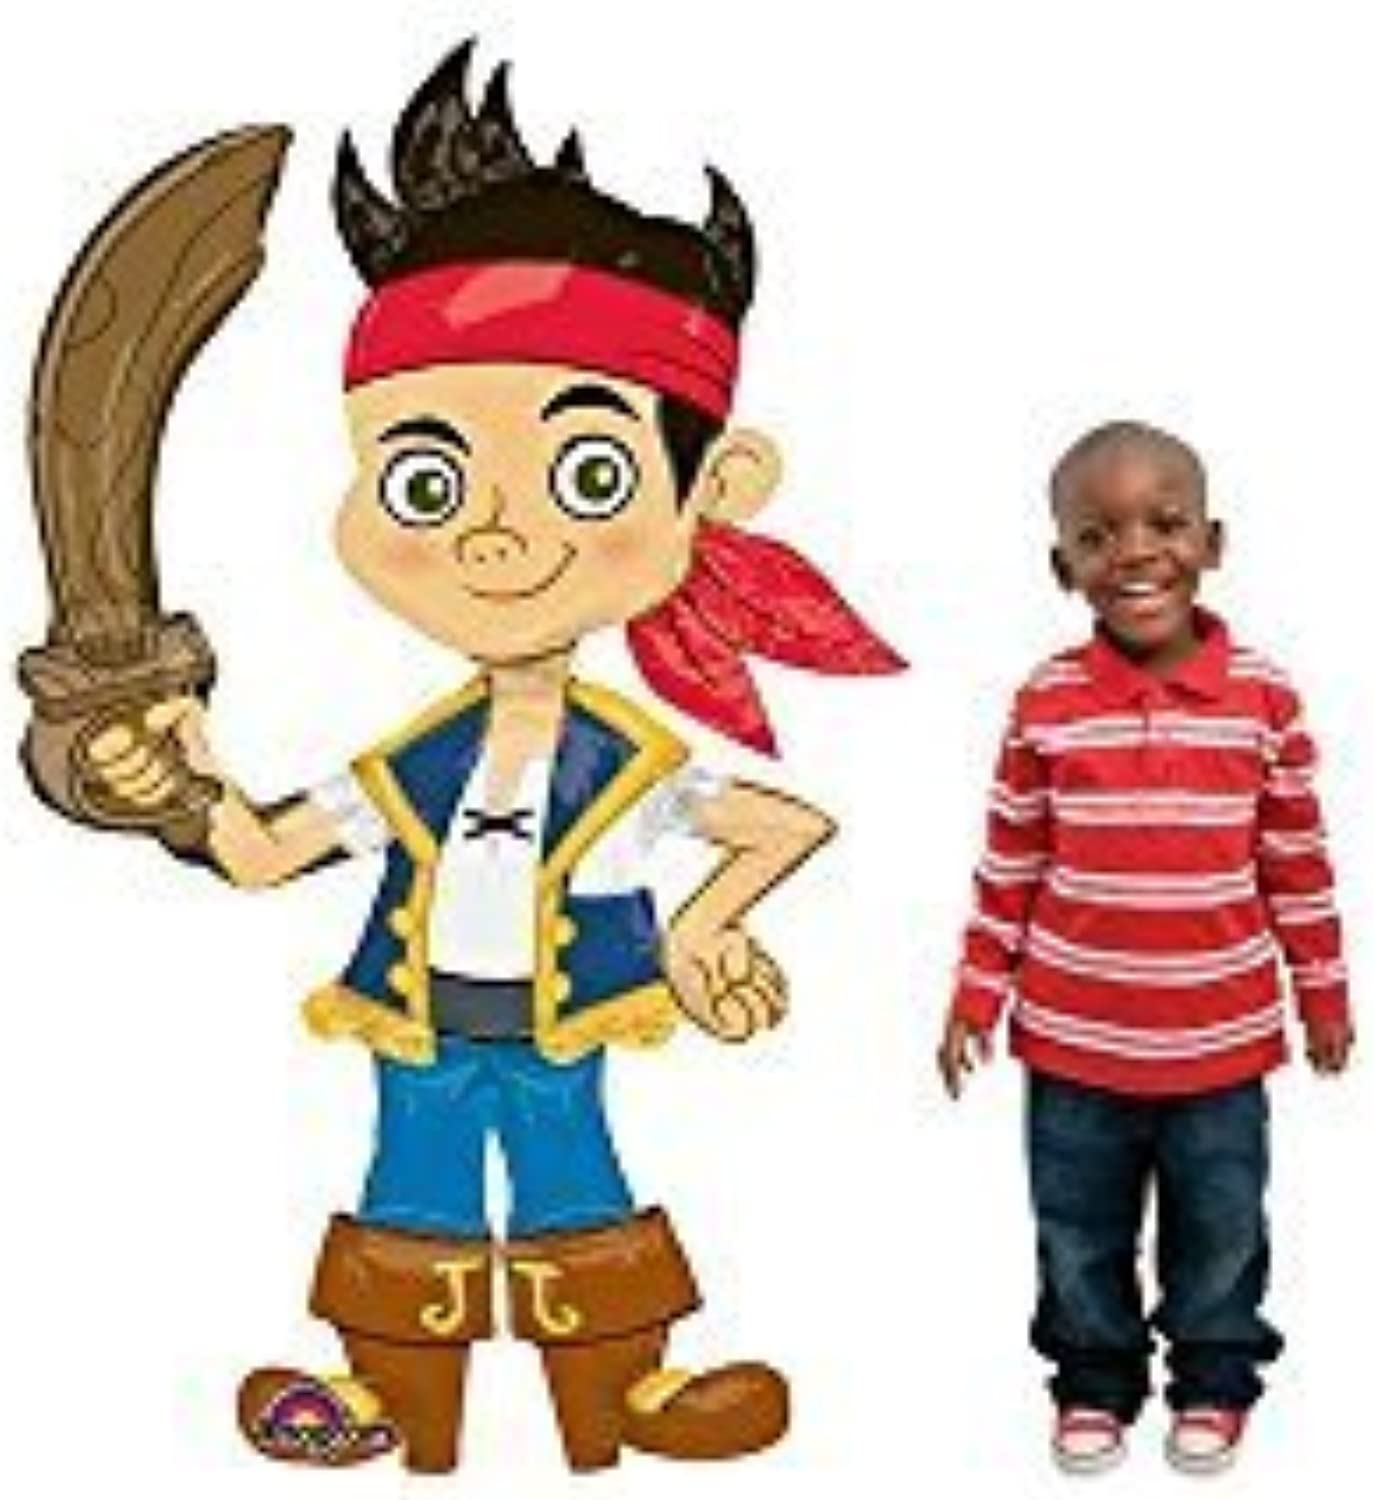 Jack And The Neverland Pirates 75& 34; Airwalker Balloon (Each) - Party Supplies by Mayflower Products